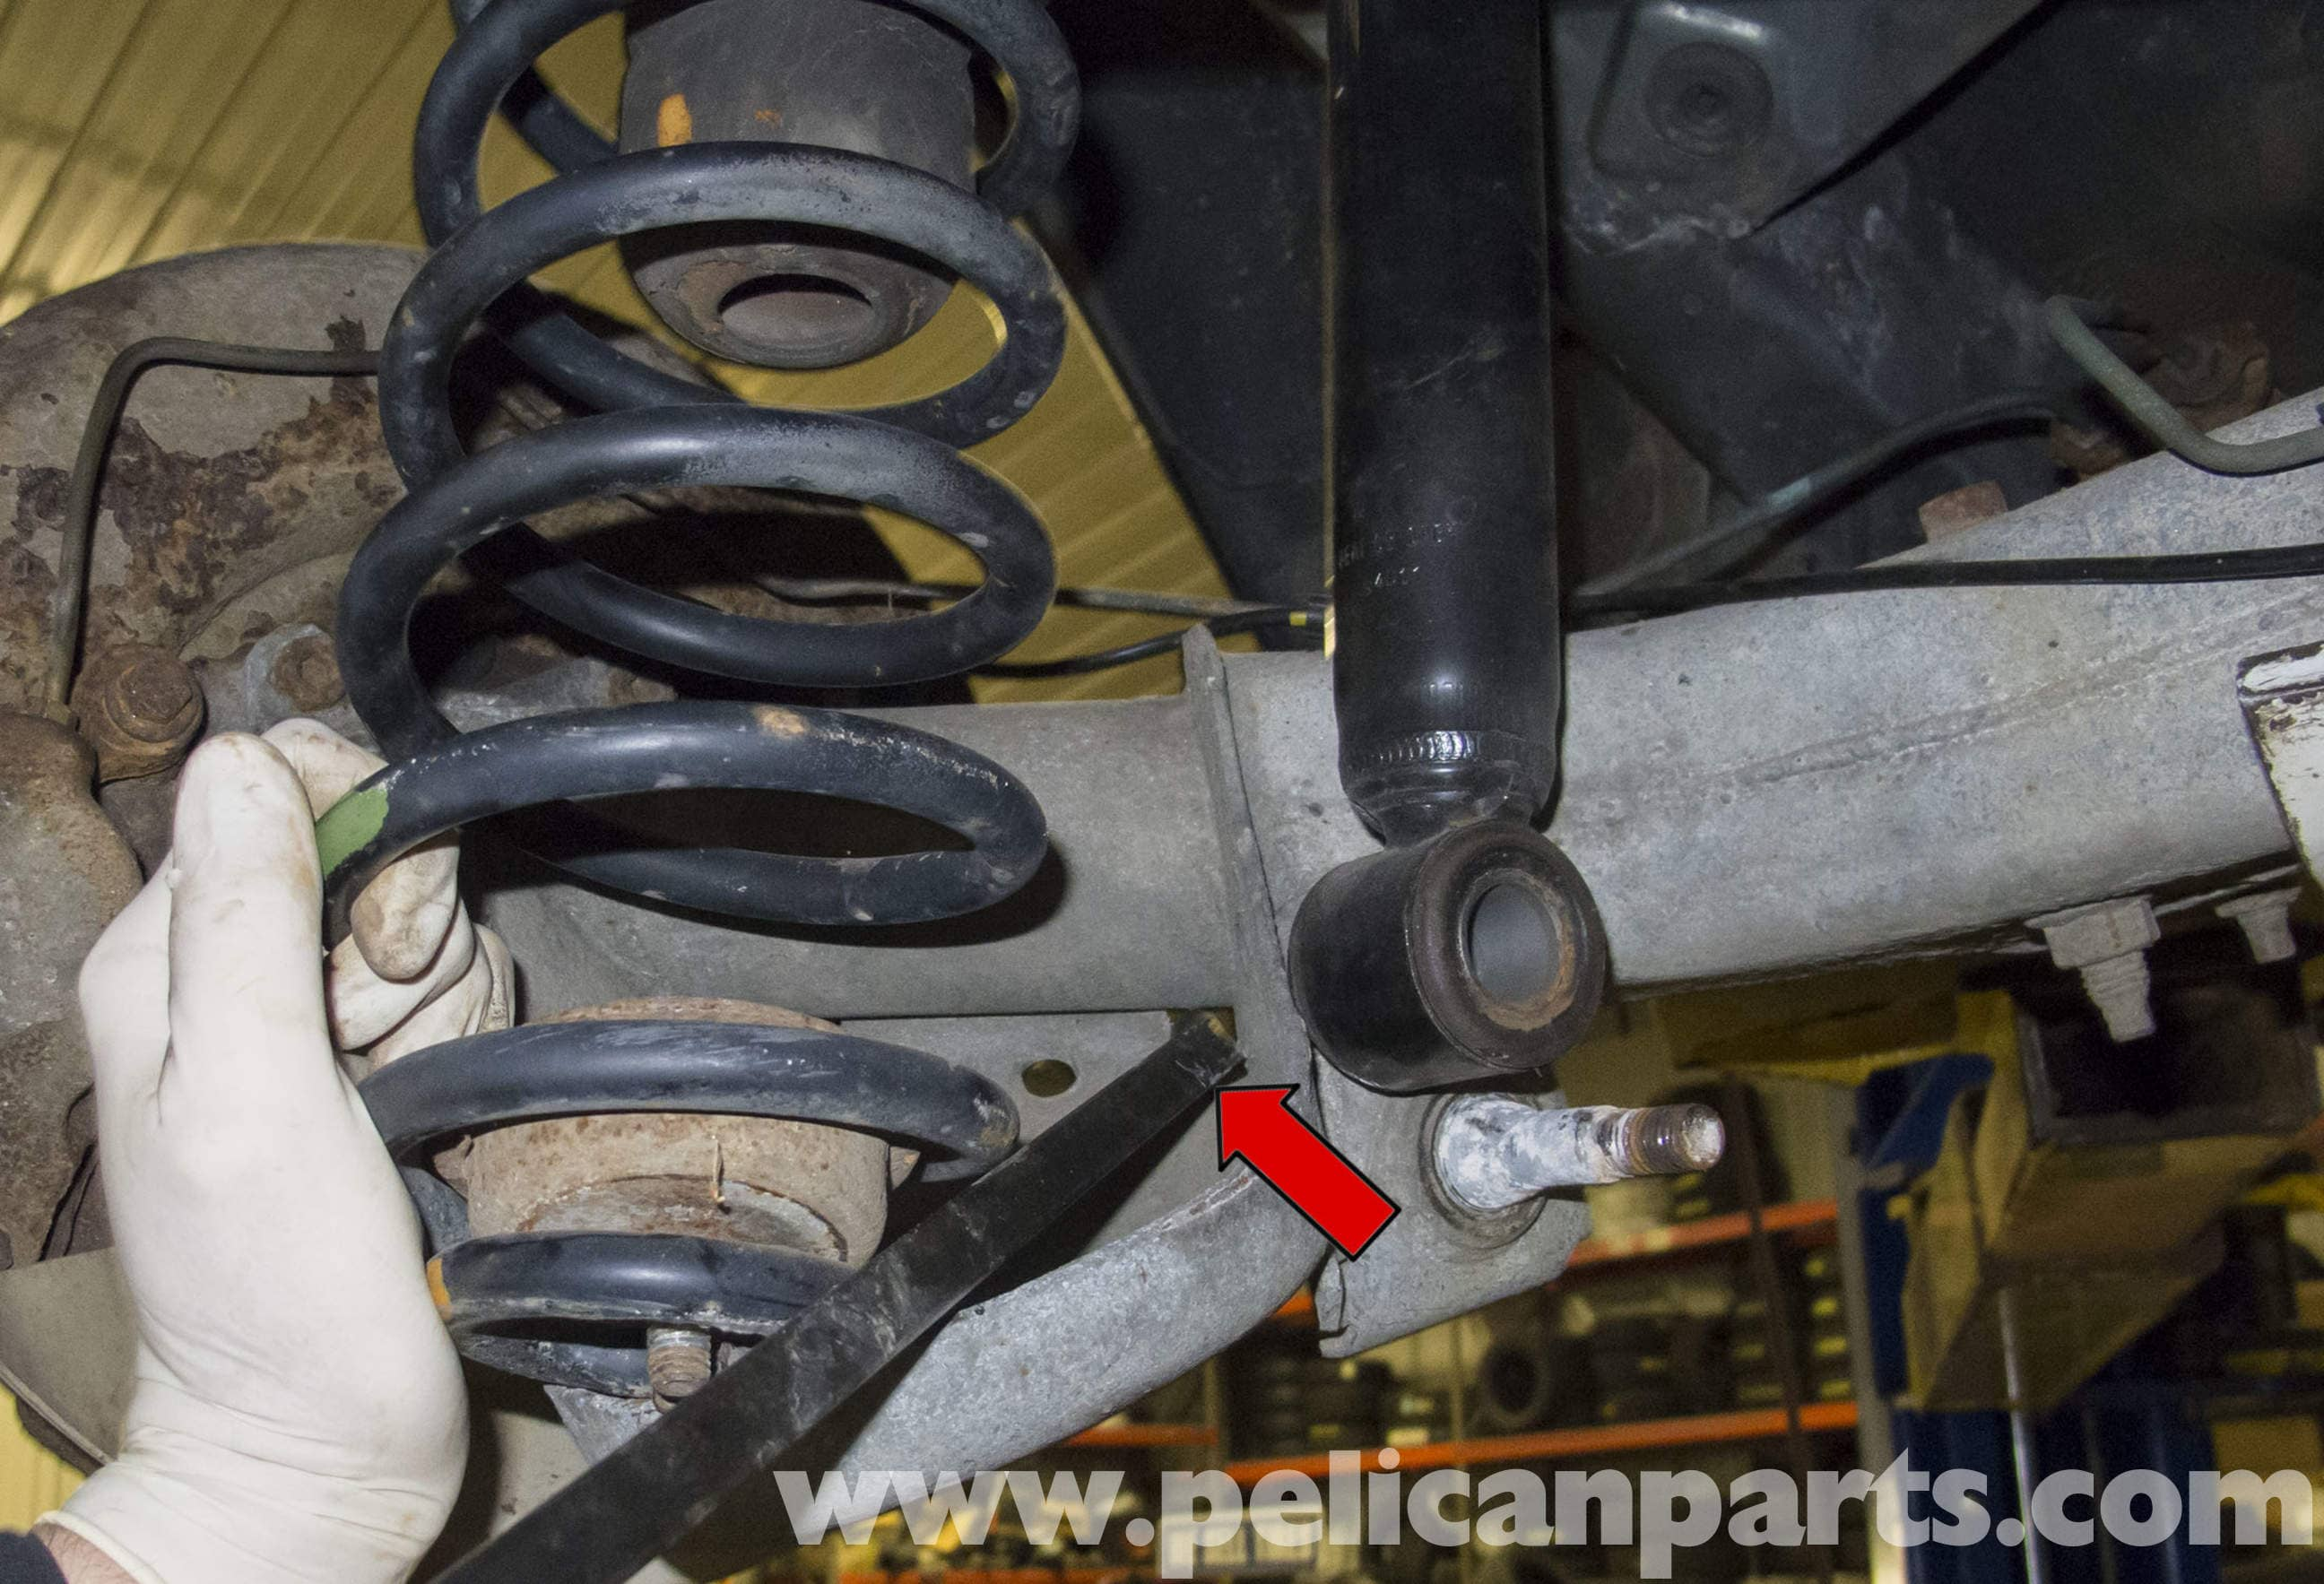 Volvo V70 Rear Coil Spring Replacement (1998-2007) - Pelican Parts DIY Maintenance Article